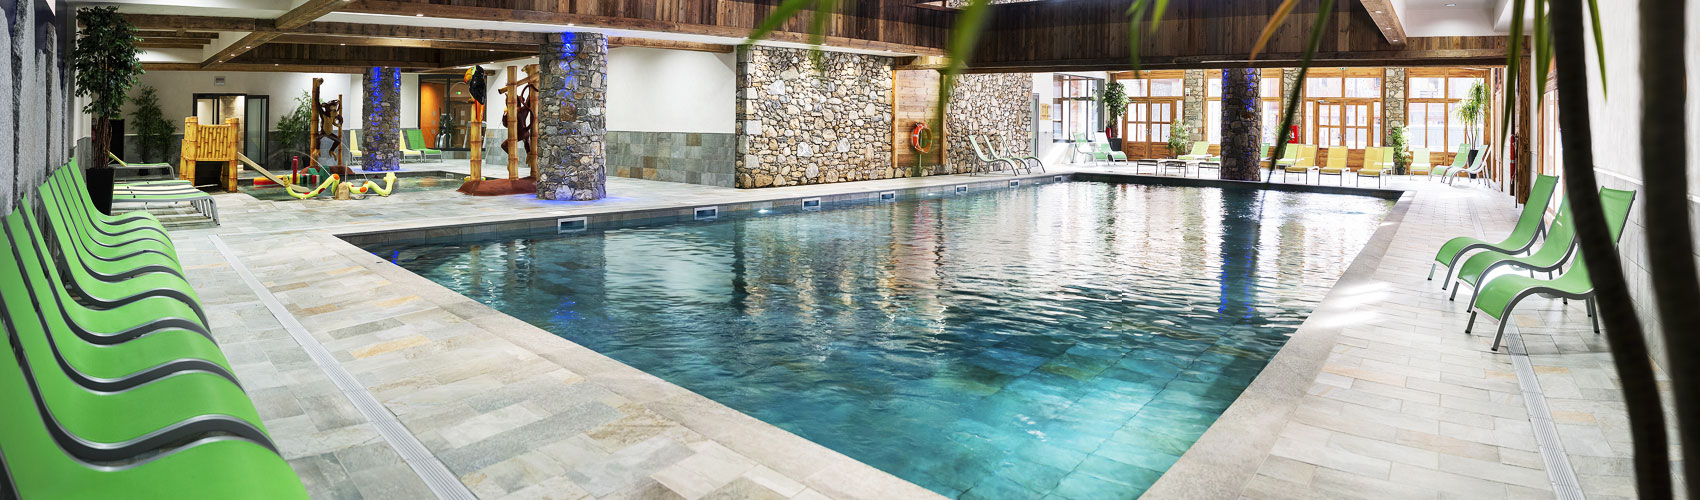 Construction piscines 74 spas jacuzzis hammams saunas jbs for Construction piscine haute savoie